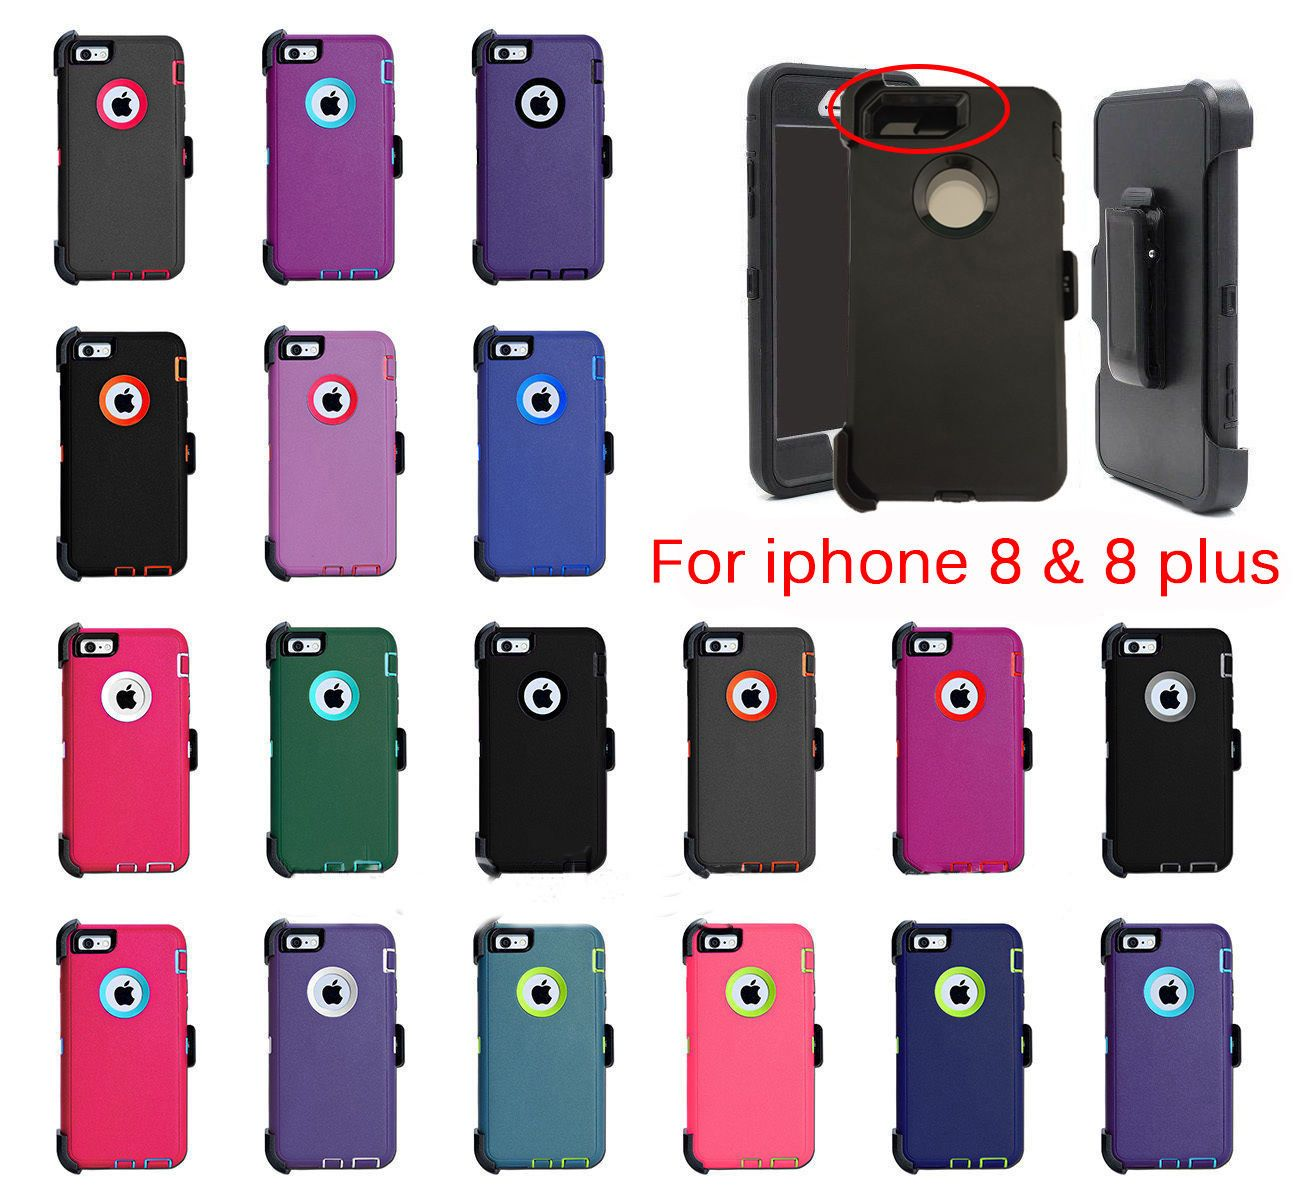 on sale 1bfd0 1ca29 Details about iPhone 7 & iPhone 8 4.7